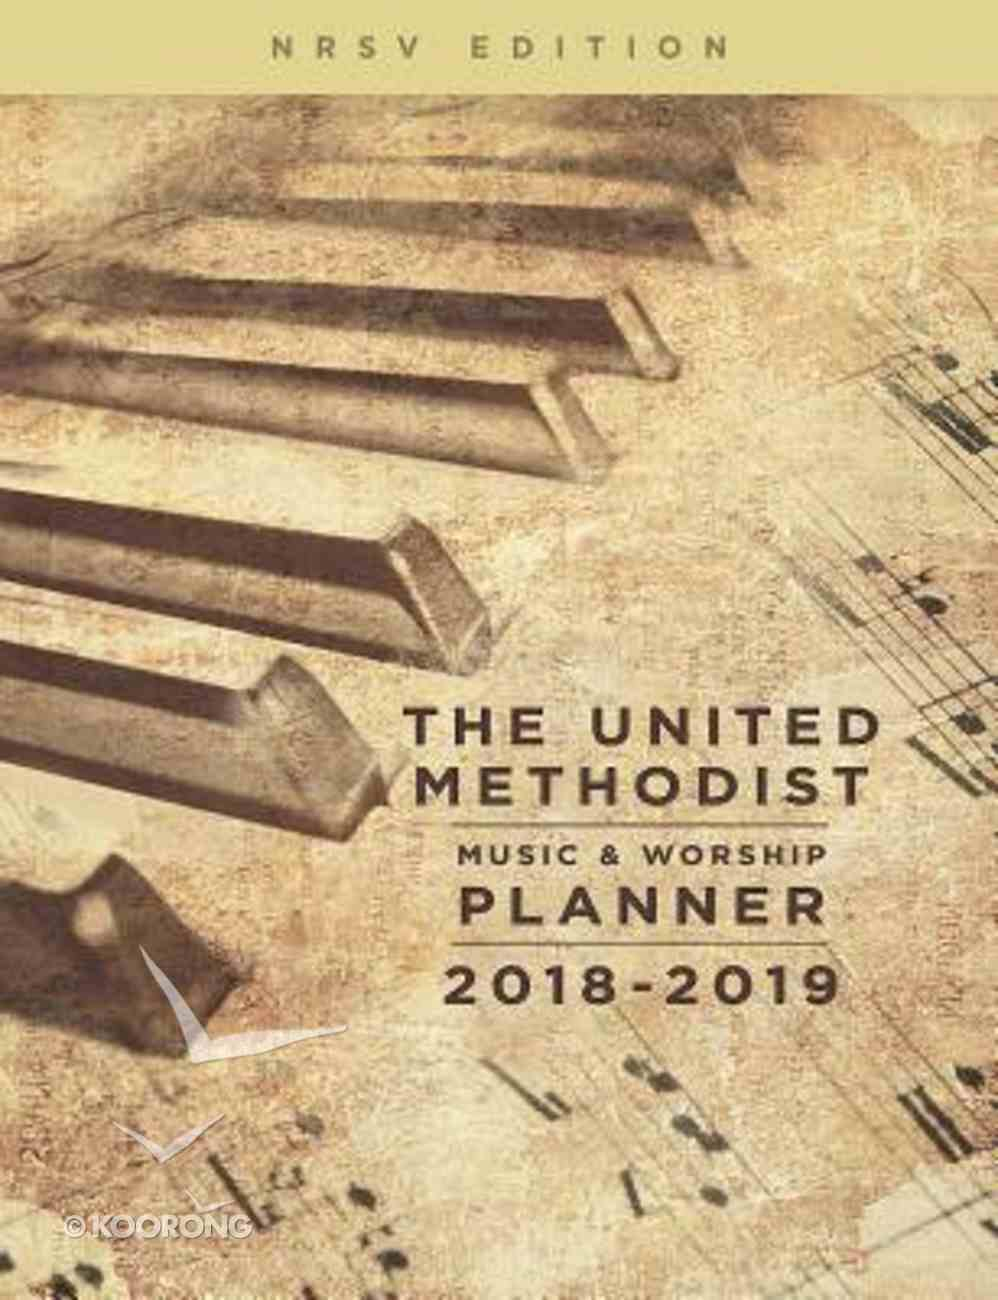 The United Methodist Music & Worship Planner 2018-2019 NRSV Edition Spiral